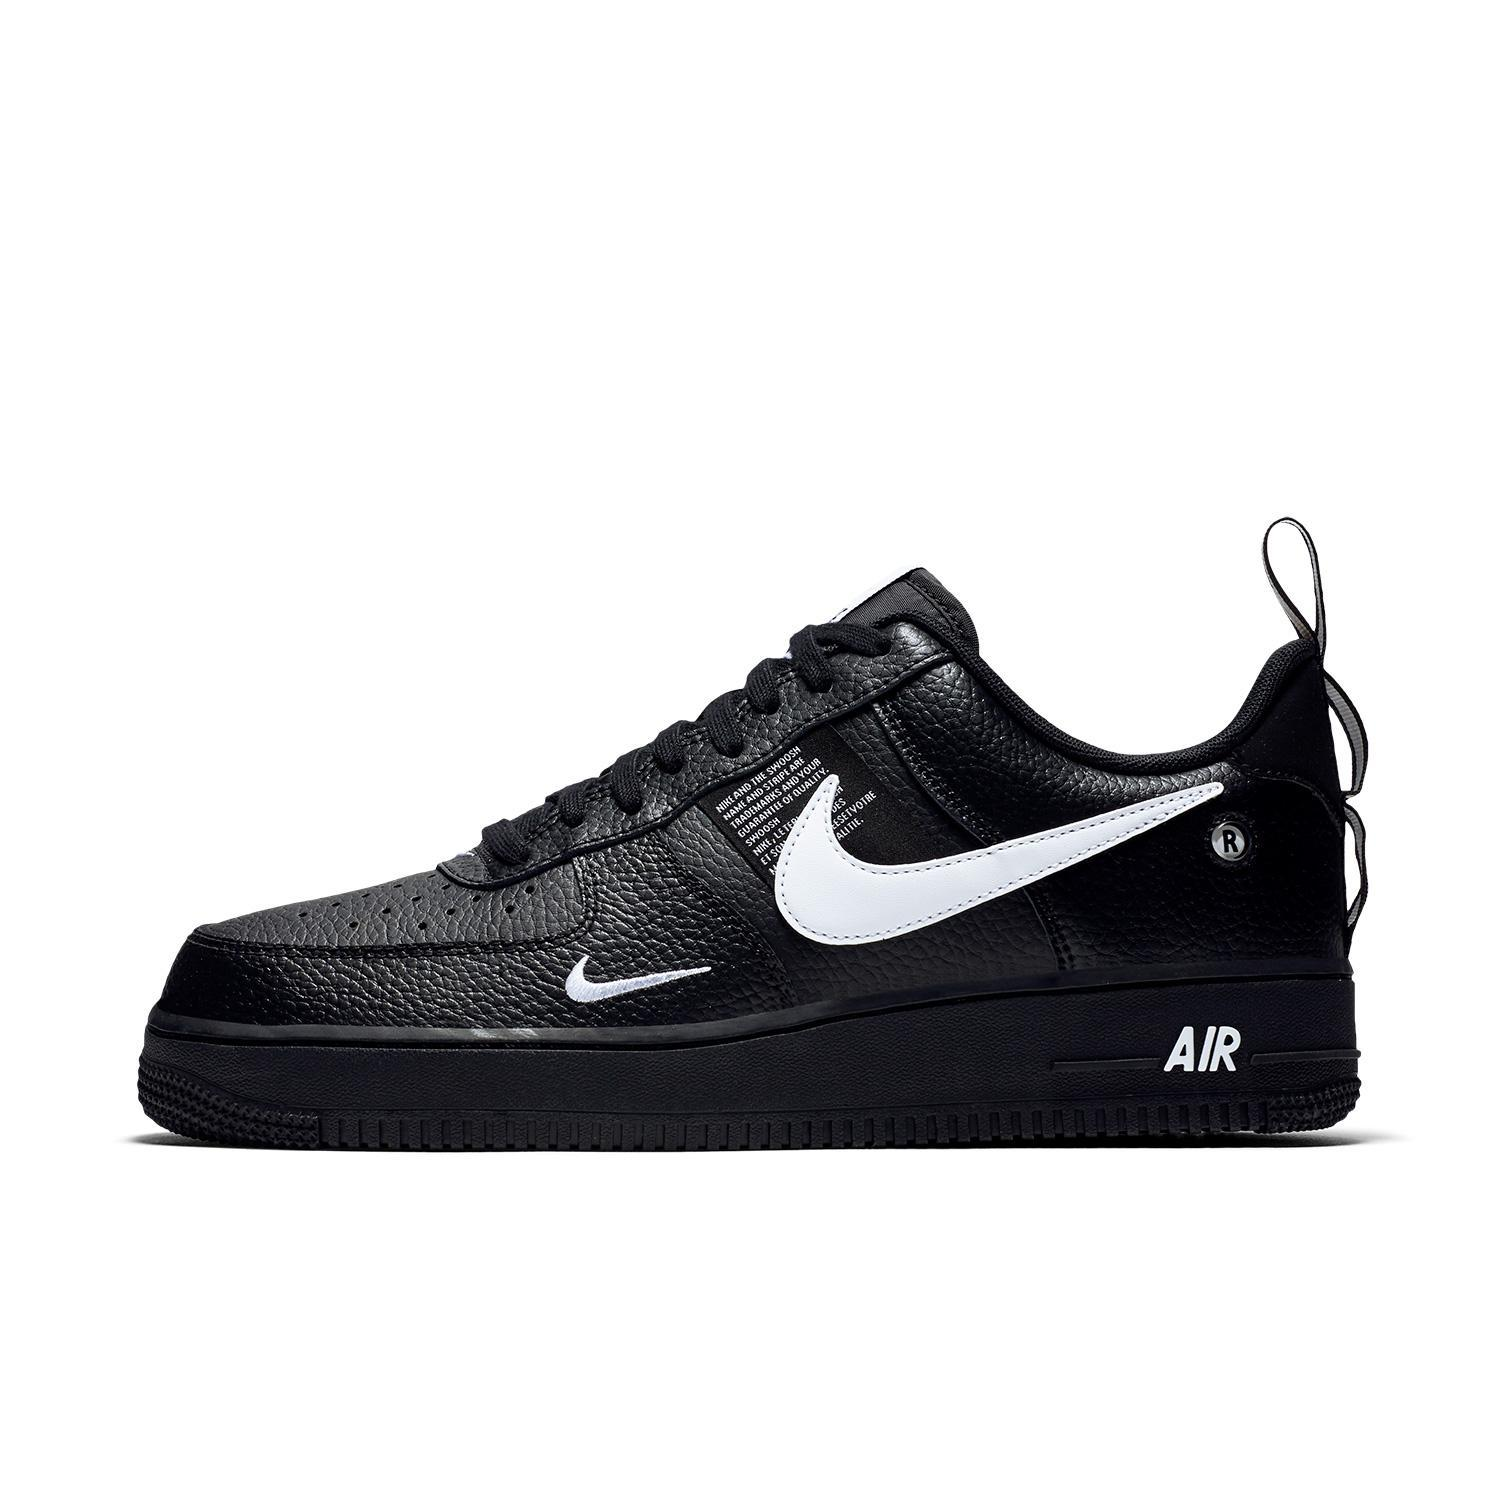 Nike Philippines - Nike Sports Shoes for sale - prices   reviews ... 7314496a1bae